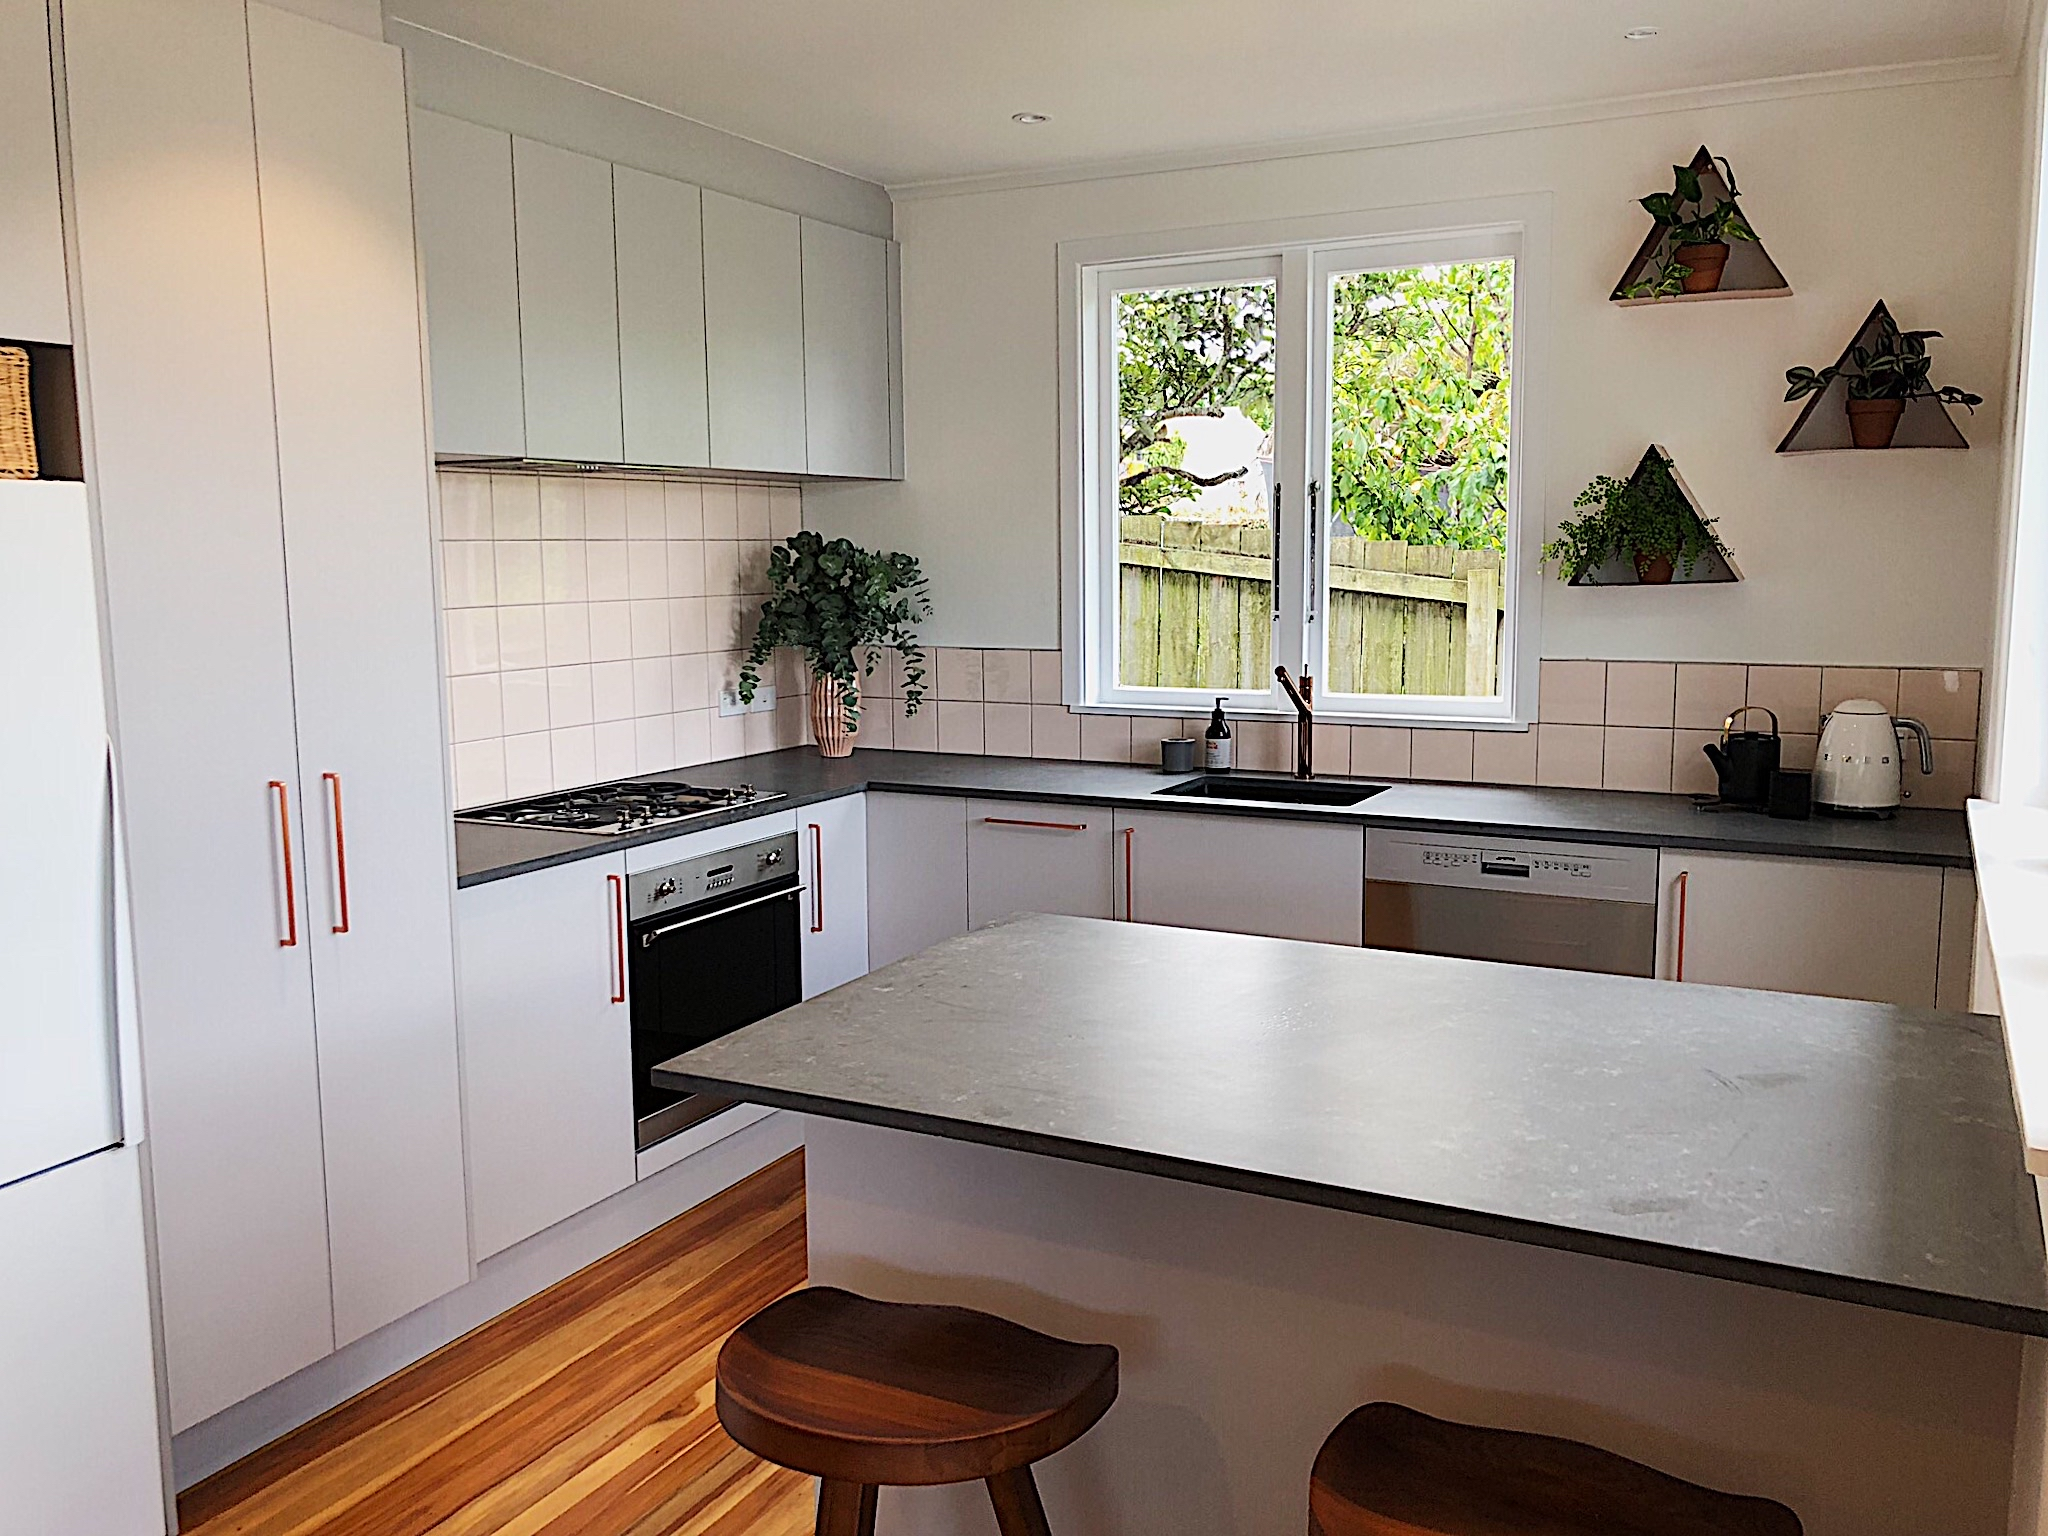 Pearson and Projects Relocatable Reno Kitchen Project - 19.jpg